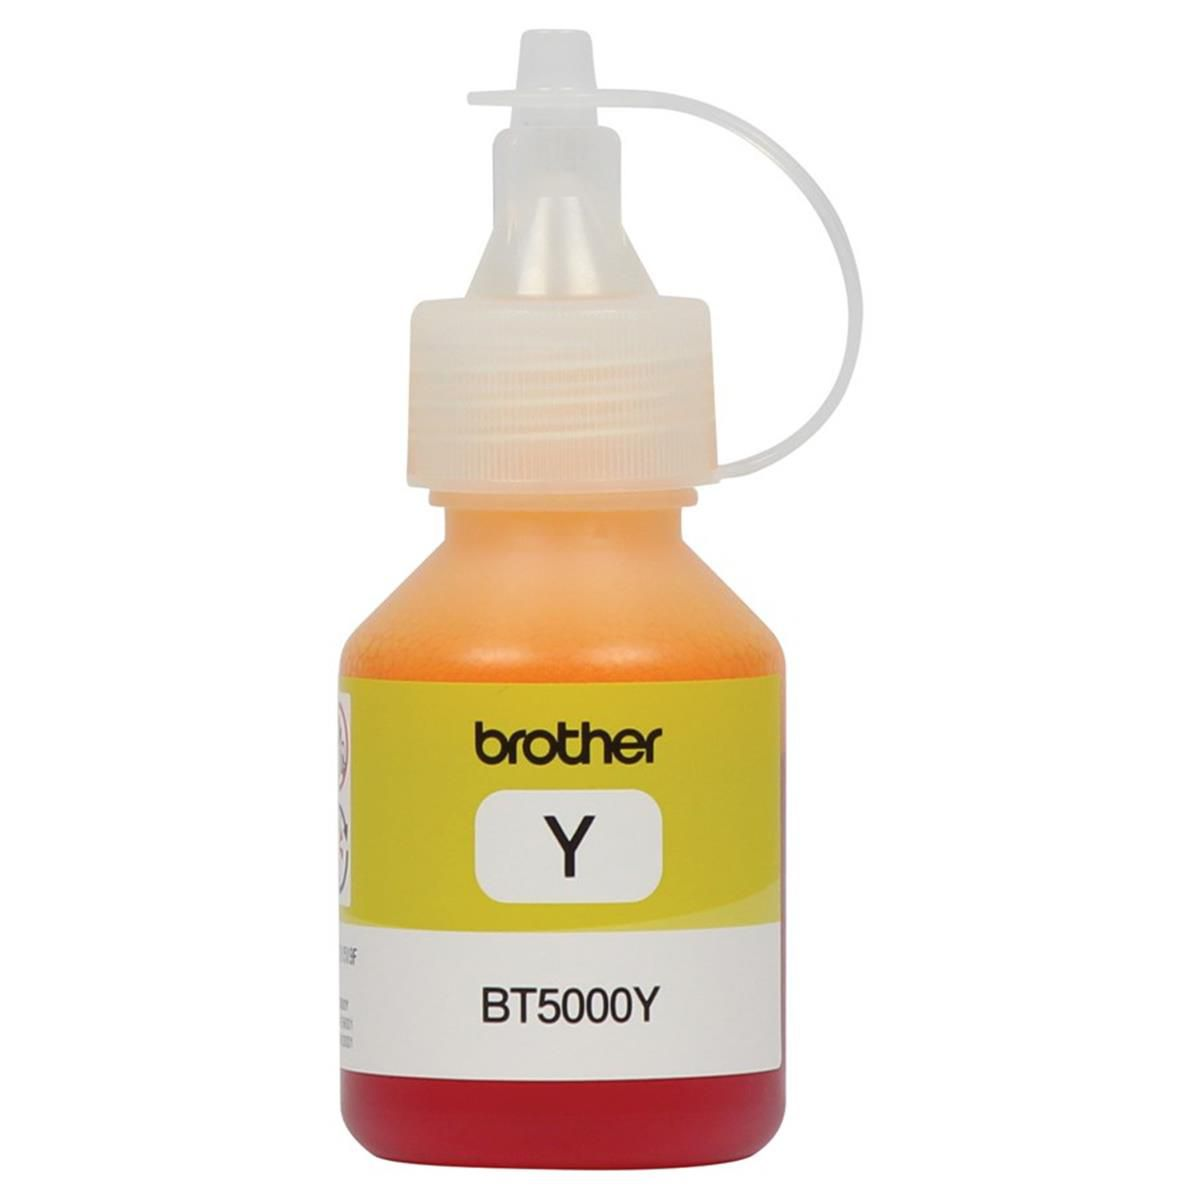 Refil de Tinta Brother - Amarelo 41,8 ML - BT5001Y